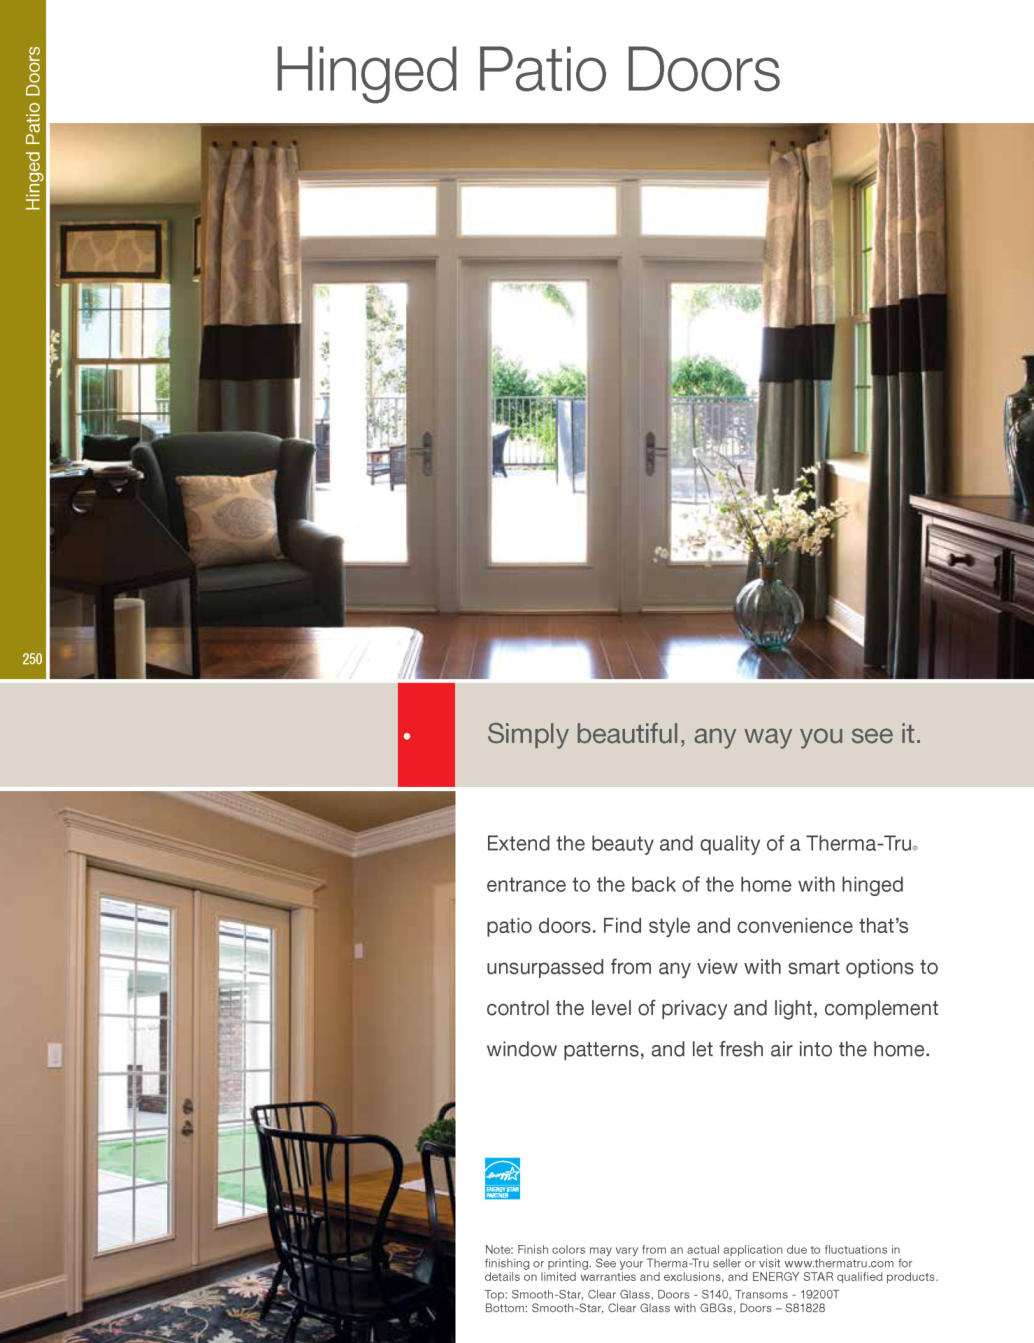 A Therma-Tru door with genuine Therma-Tru components is more than a beautiful door- it's a complete door system. Therma-Tru manufactures or specifies every ...